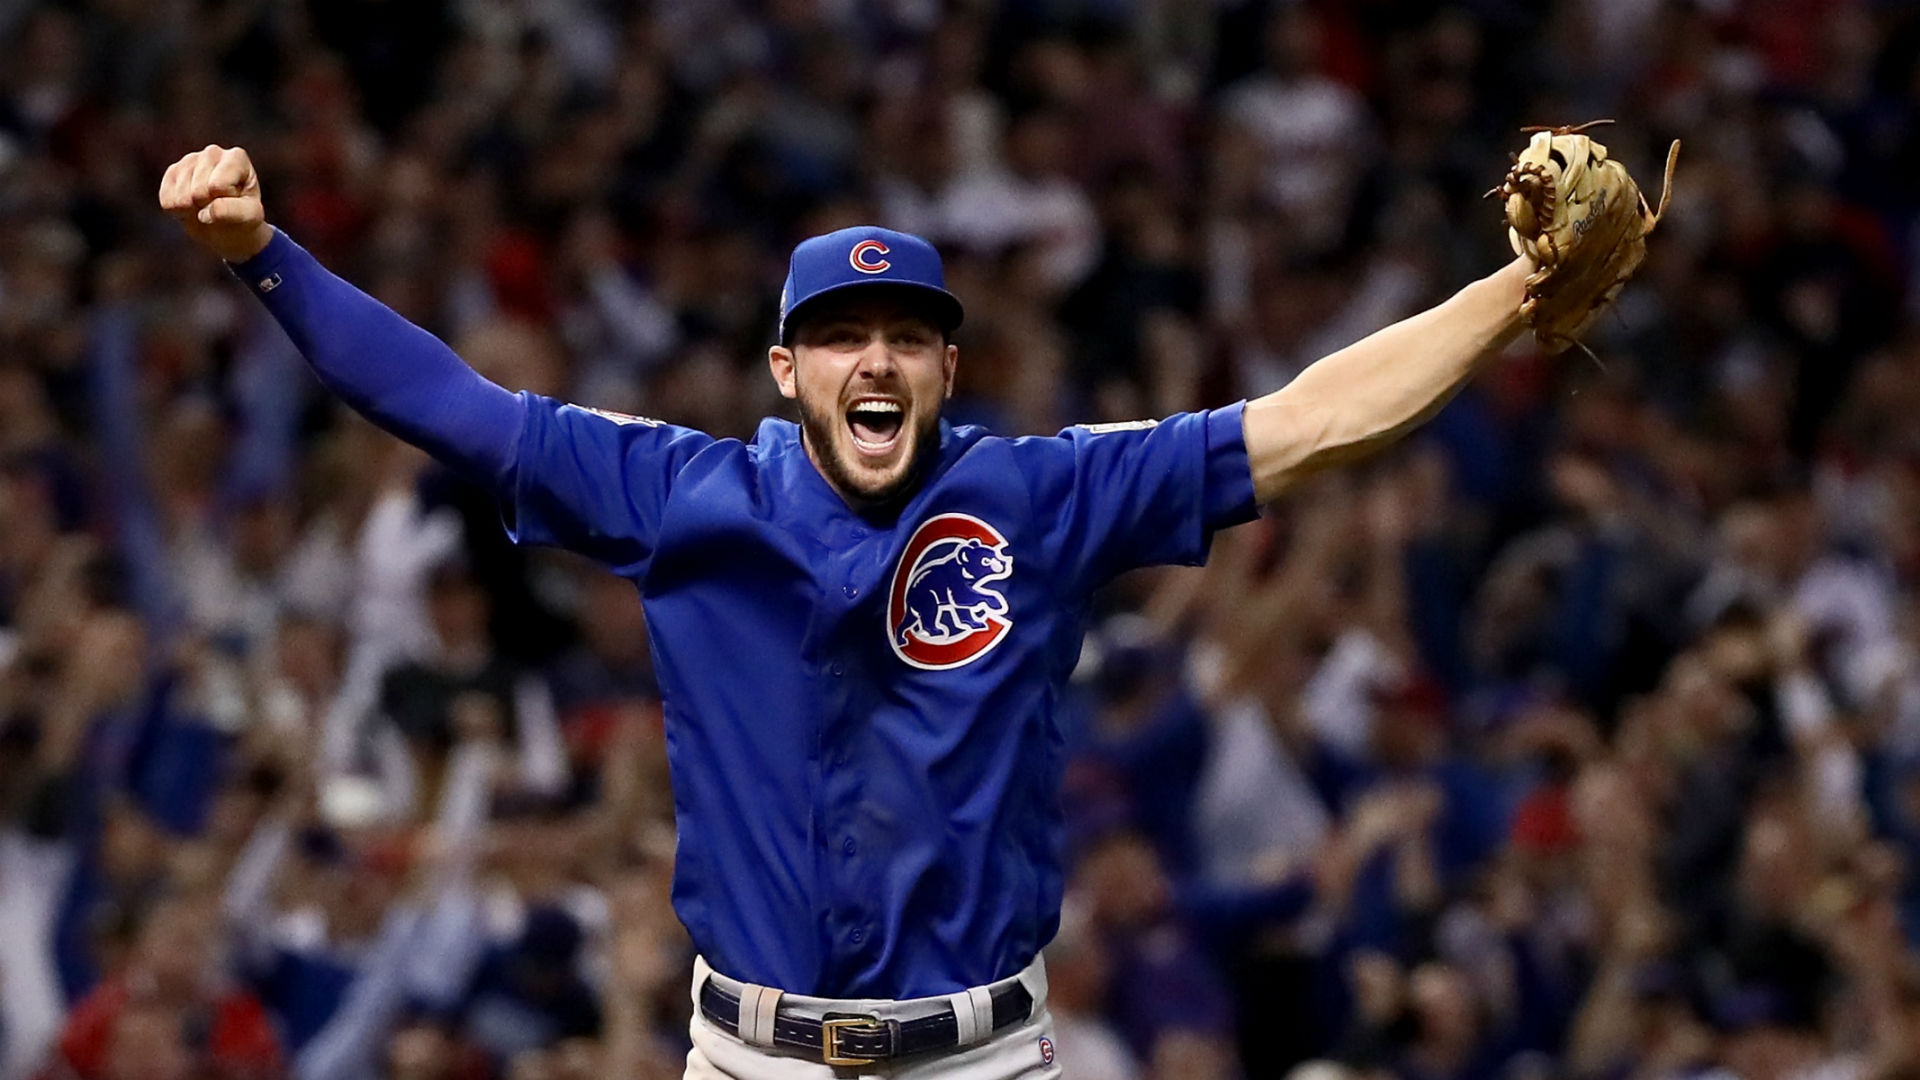 MLB awards finalists: Cubs, Indians players headline baseball's annual honors